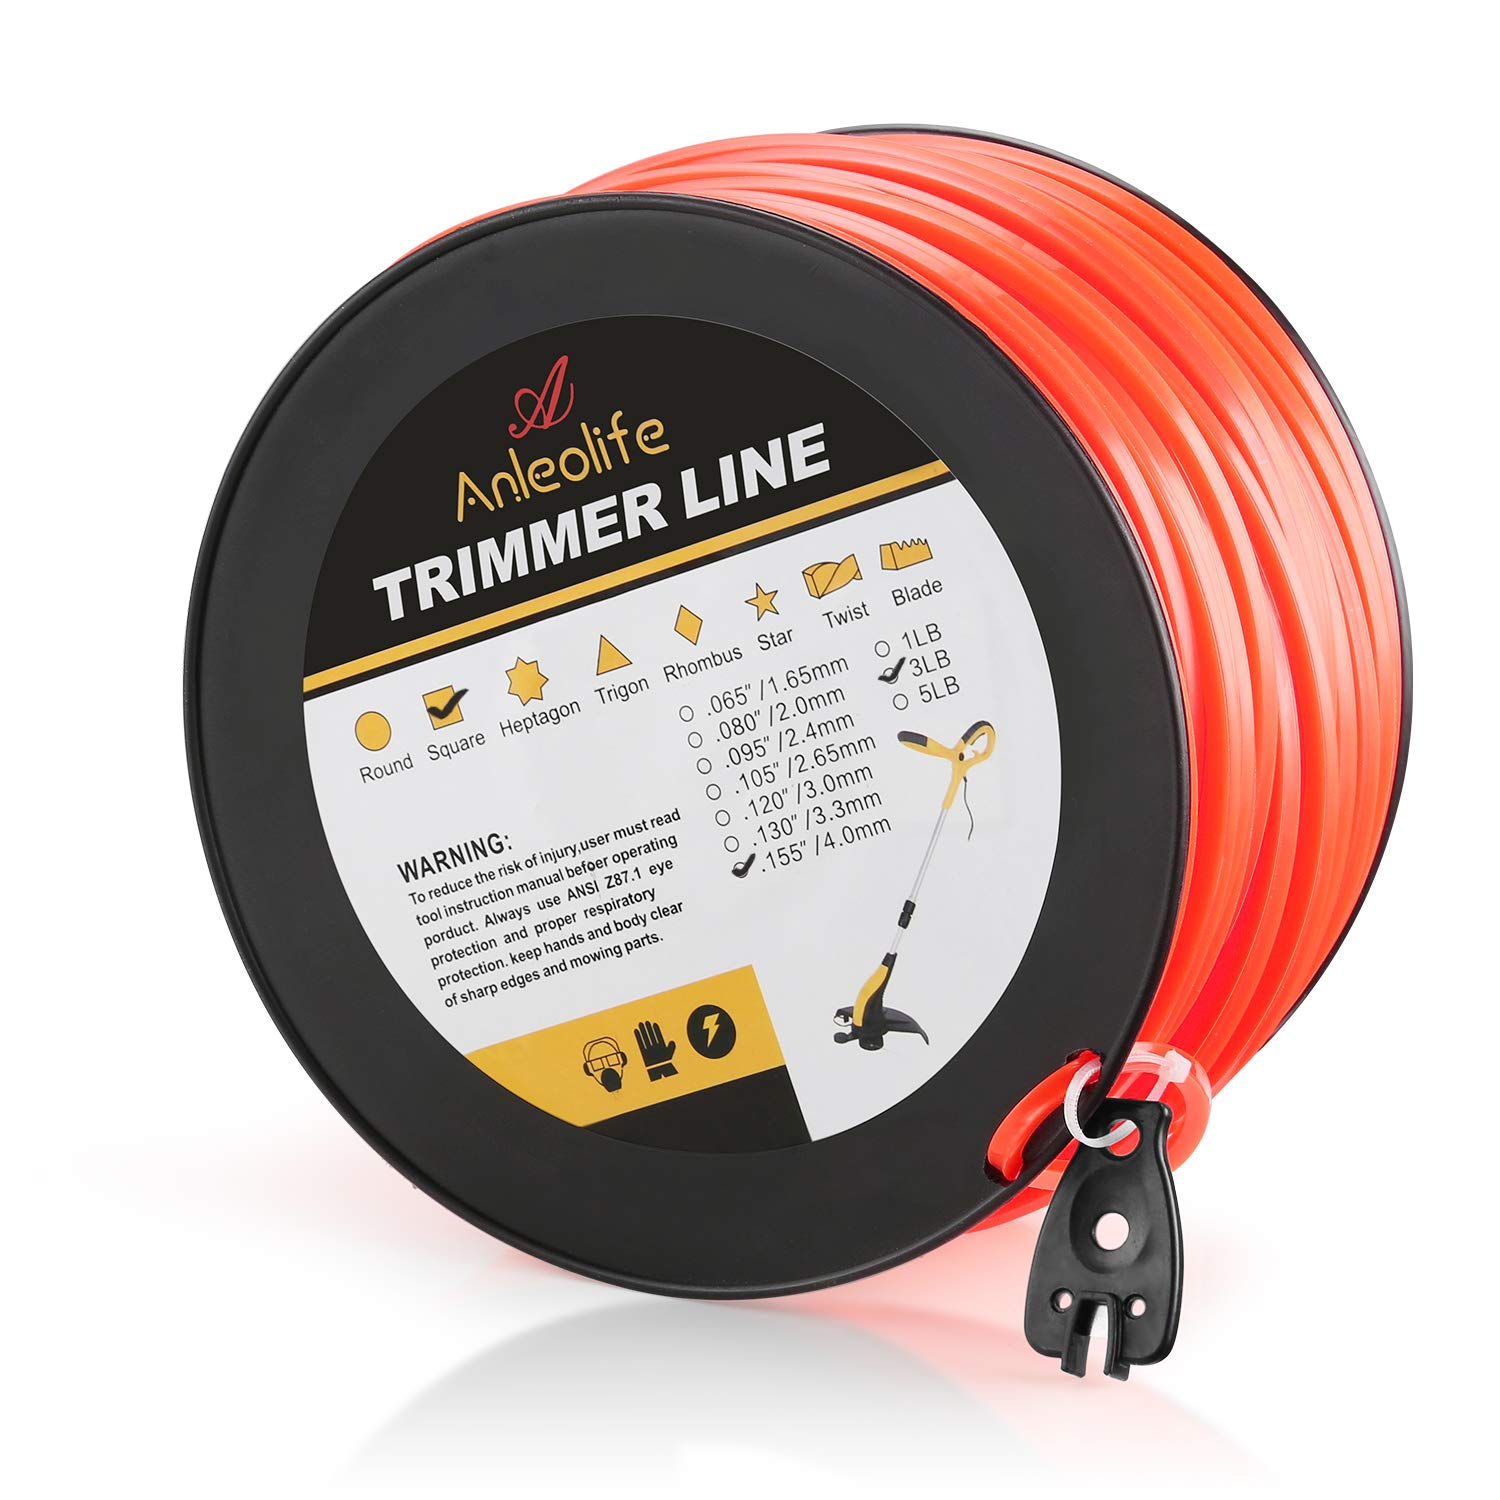 Anleolife 3-Pound Commercial Square .155-Inch-by-280-ft String Trimmer Line in Spool,with Bonus Line Cutter, Orange by Anleolife